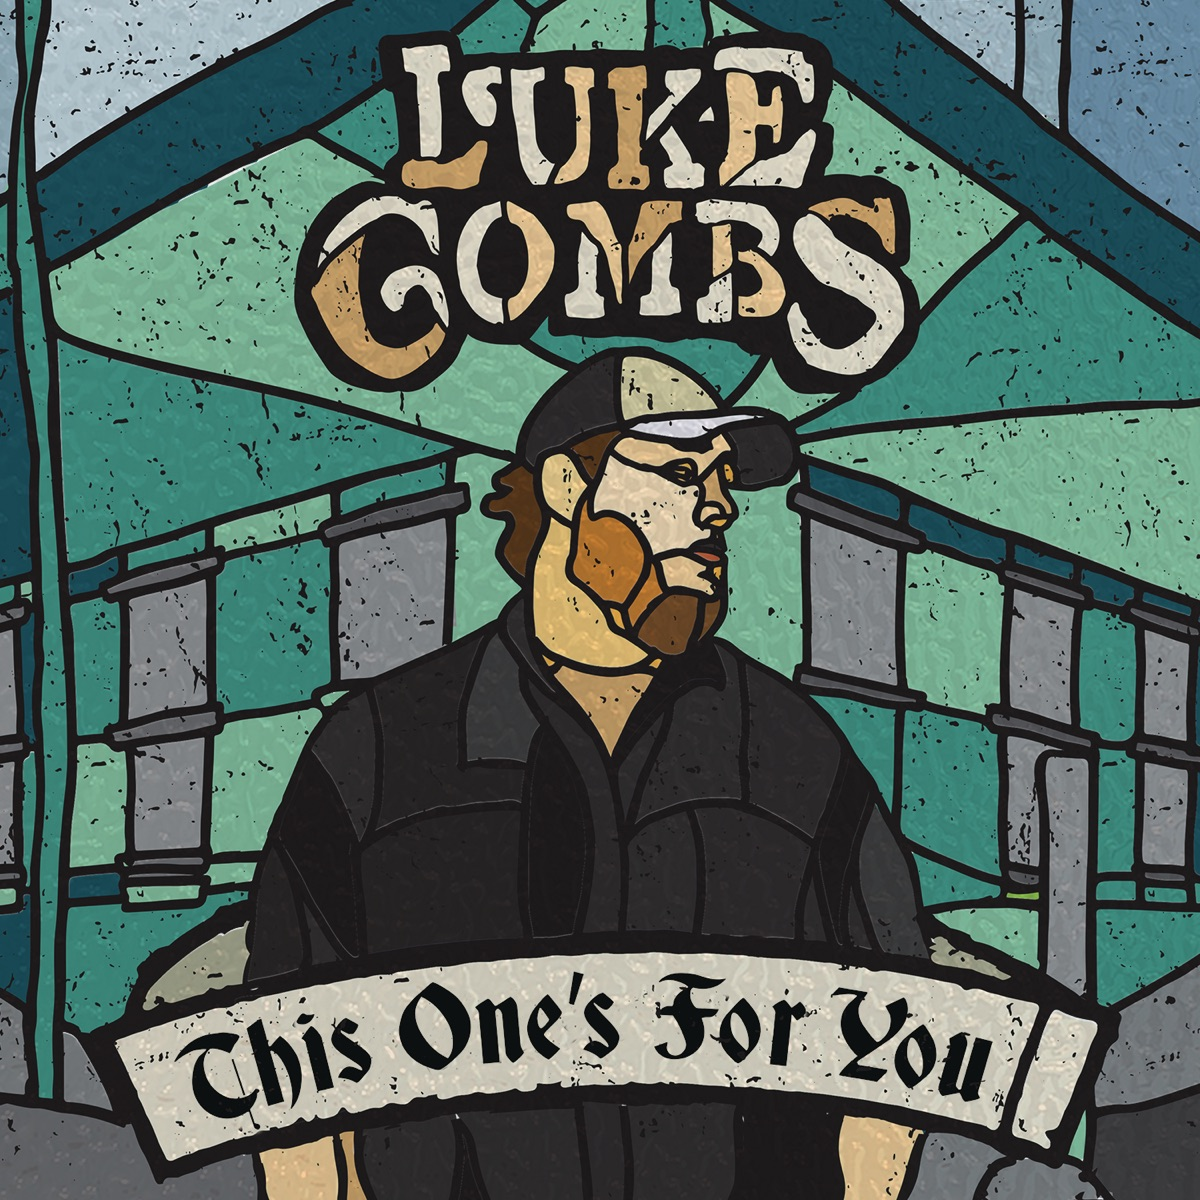 This Ones for You Luke Combs CD cover